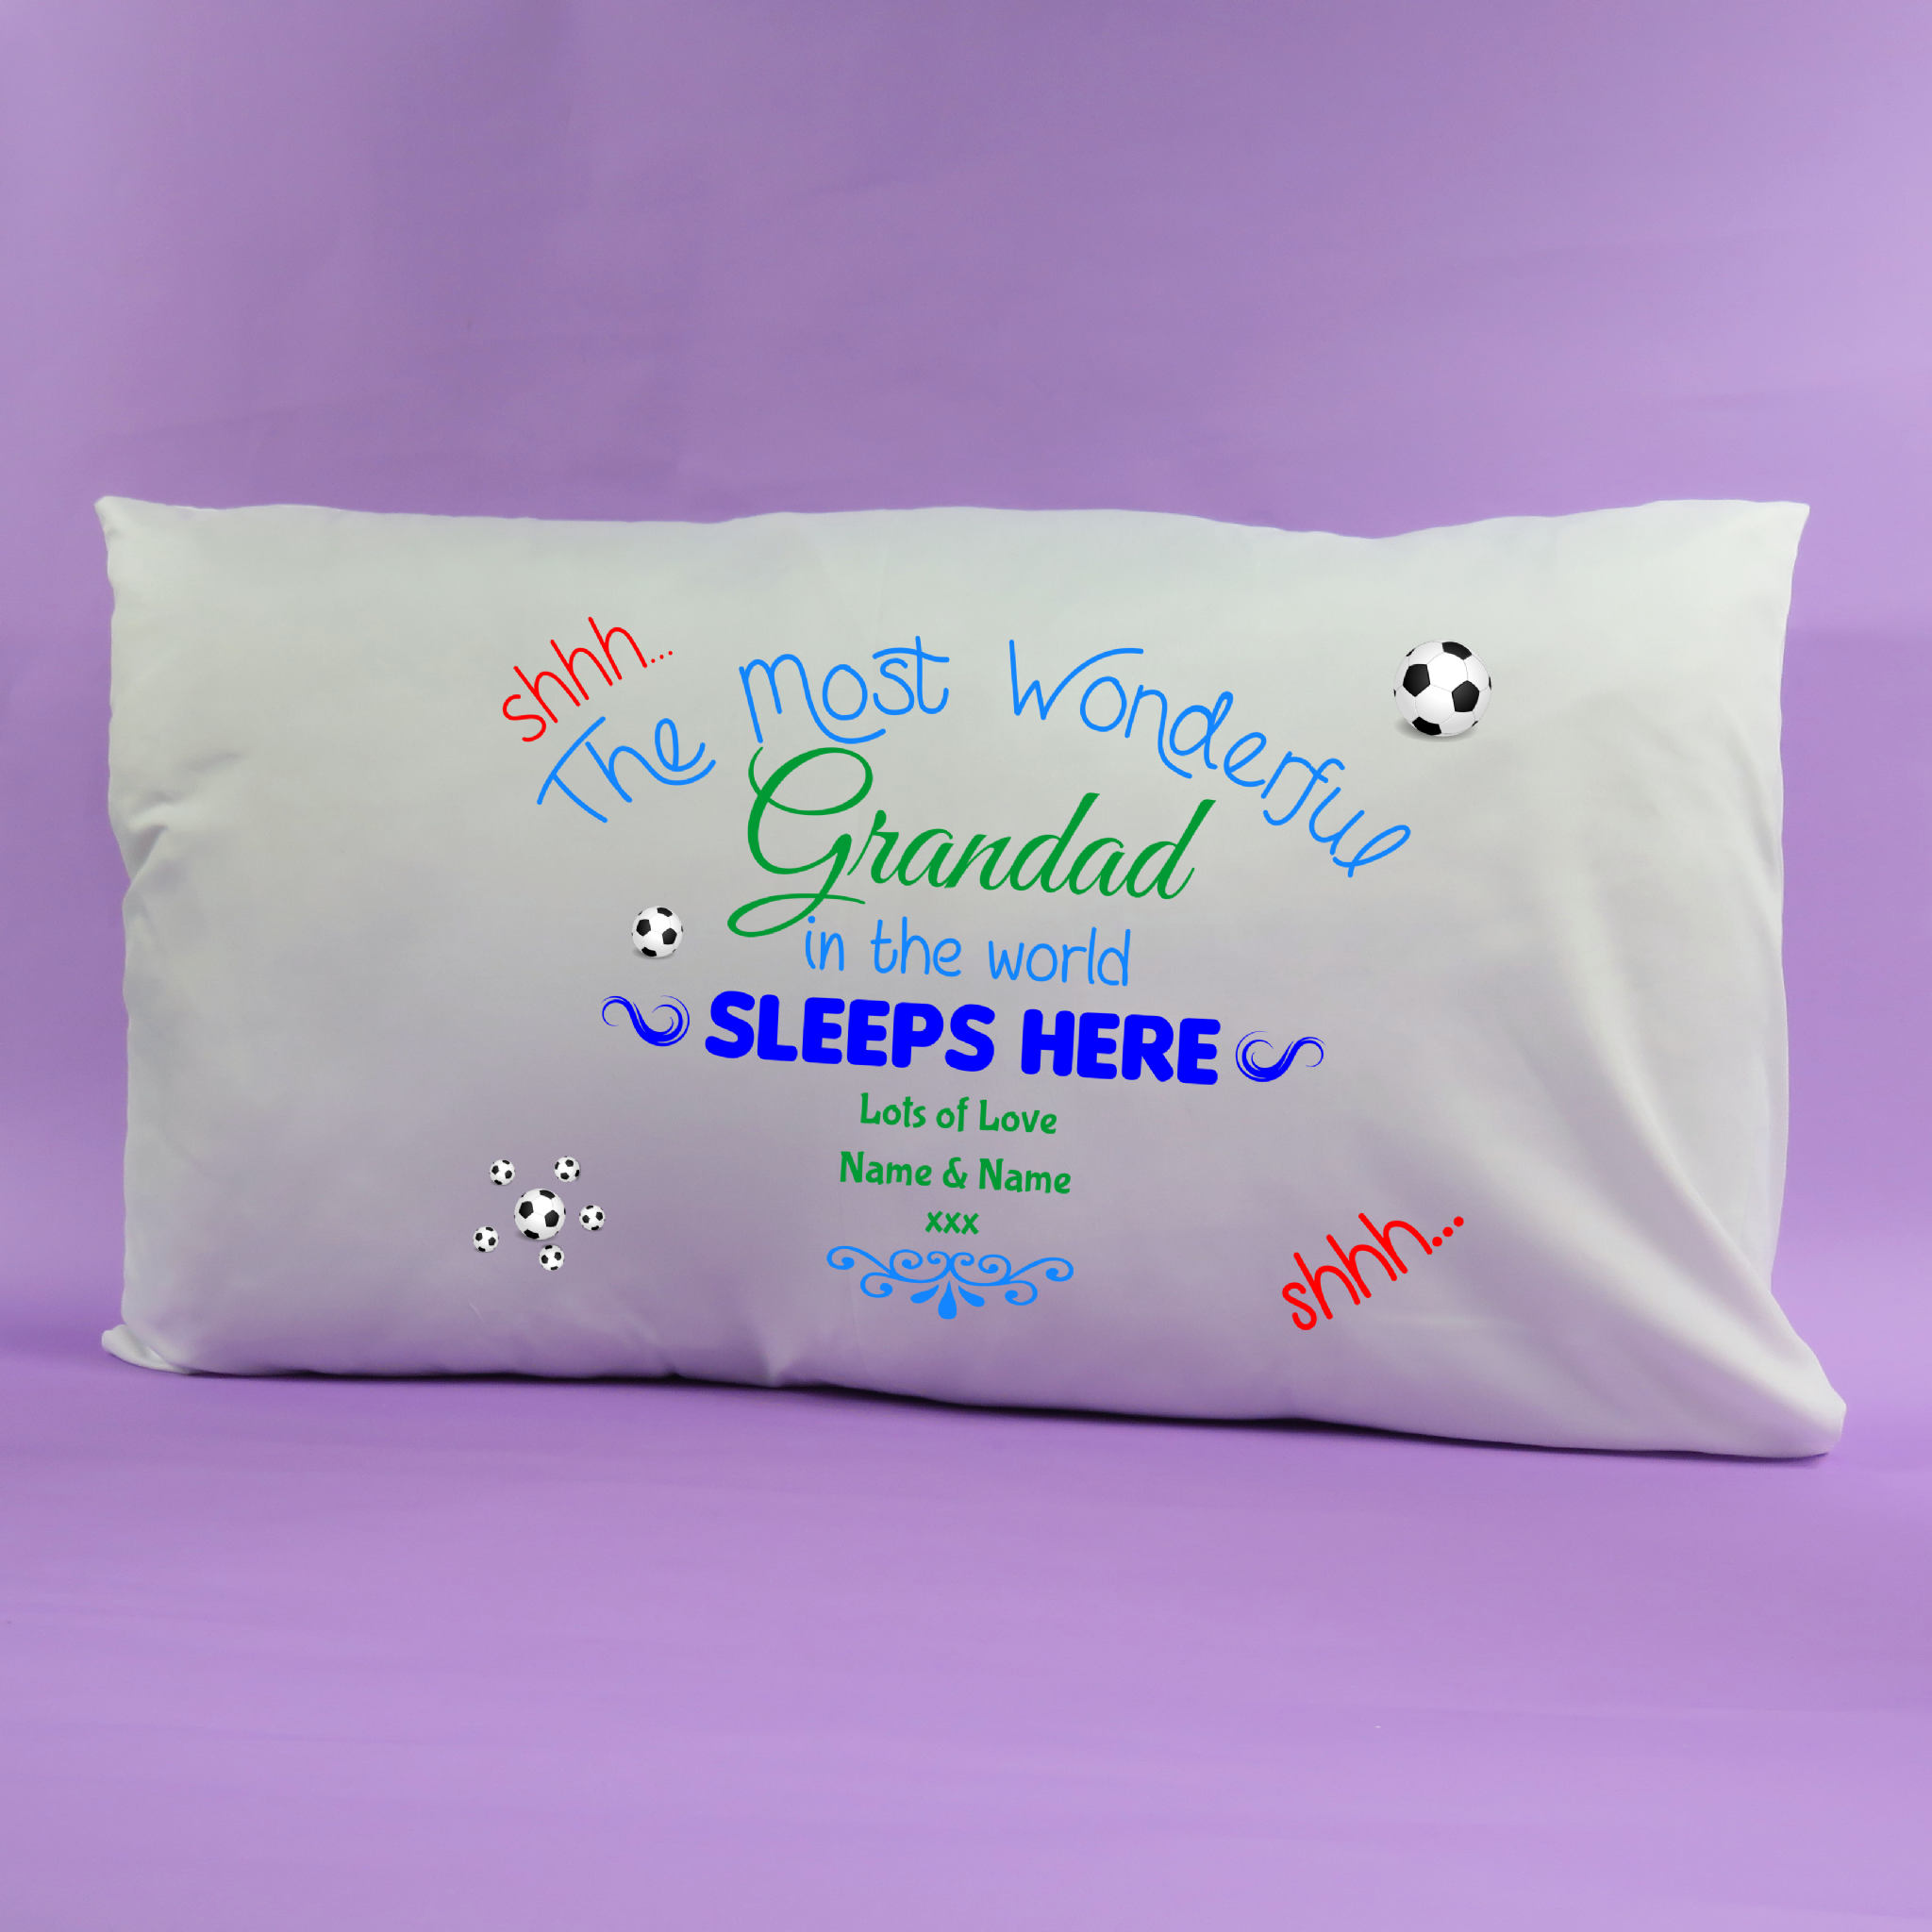 Fathers Day Gift from the kids Pillow case personalised fathers day gift Grandad Grandpa Pappy